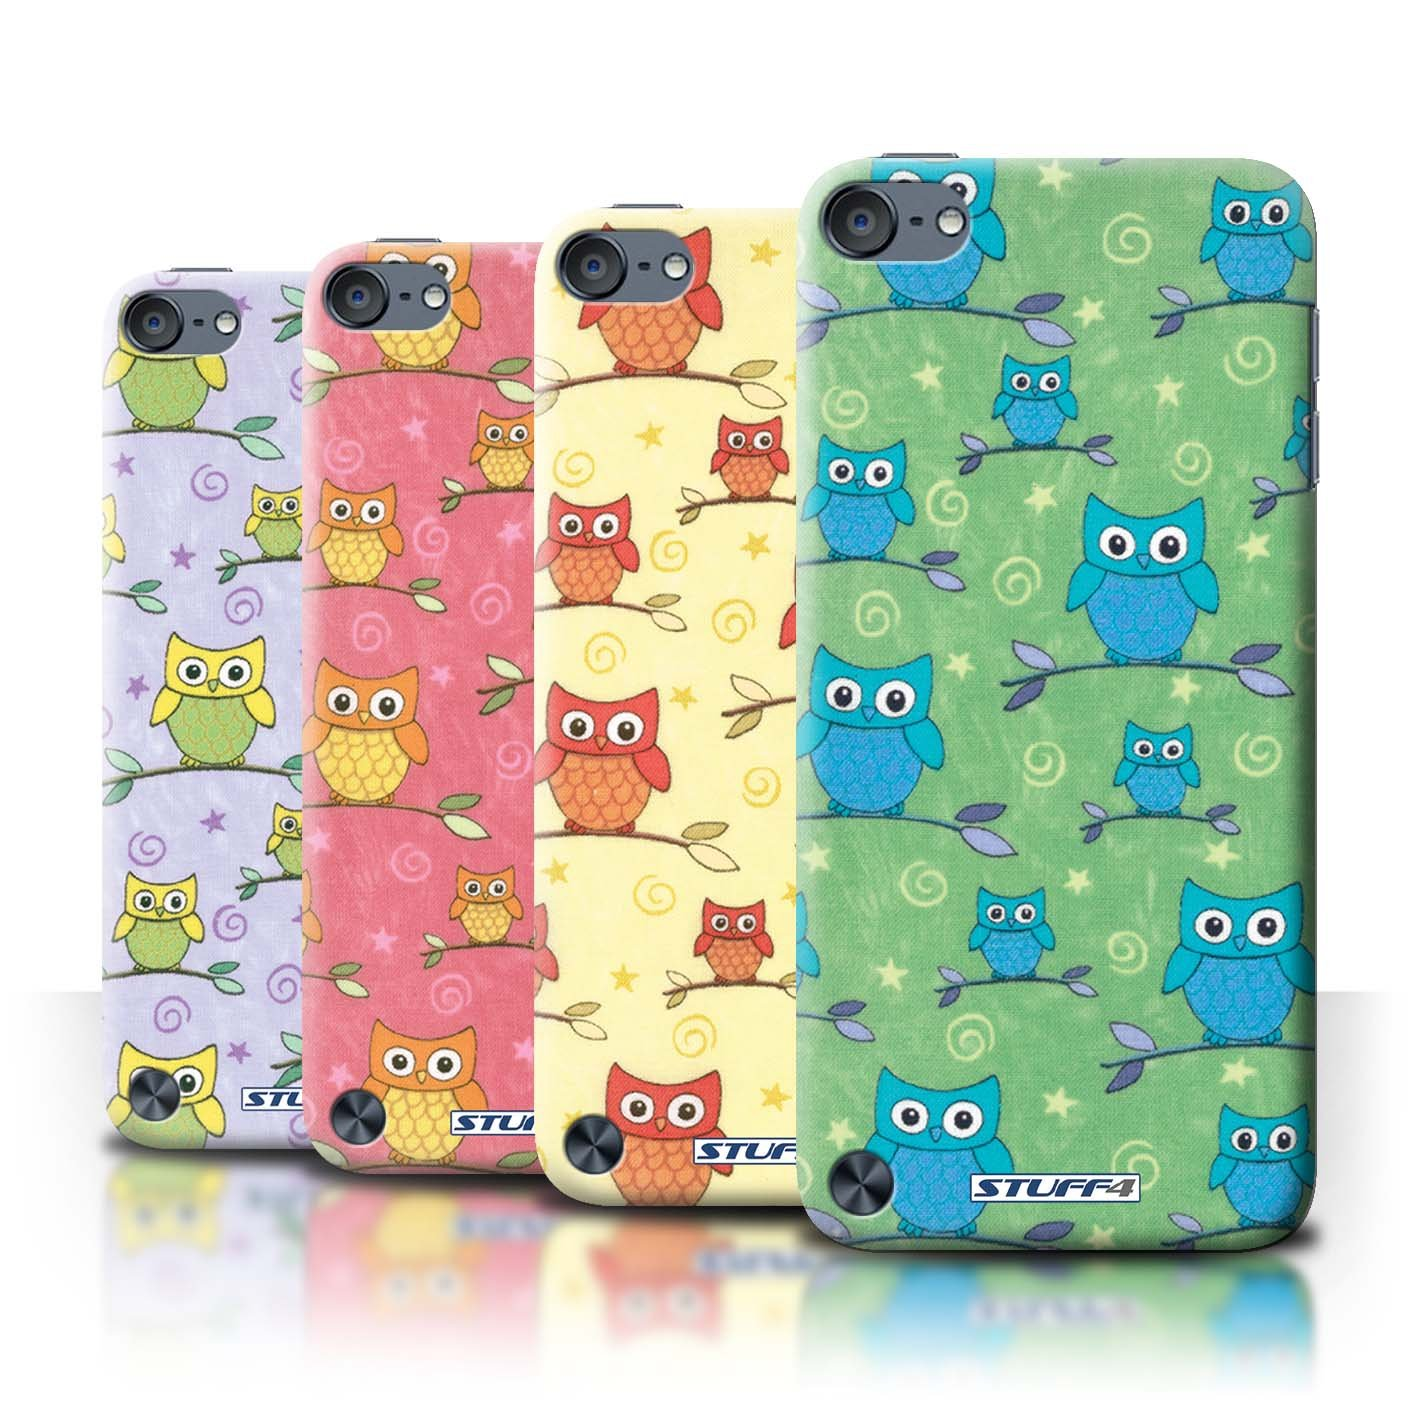 STUFF4 Phone Case / Cover for Apple iPod Touch 5review and more information